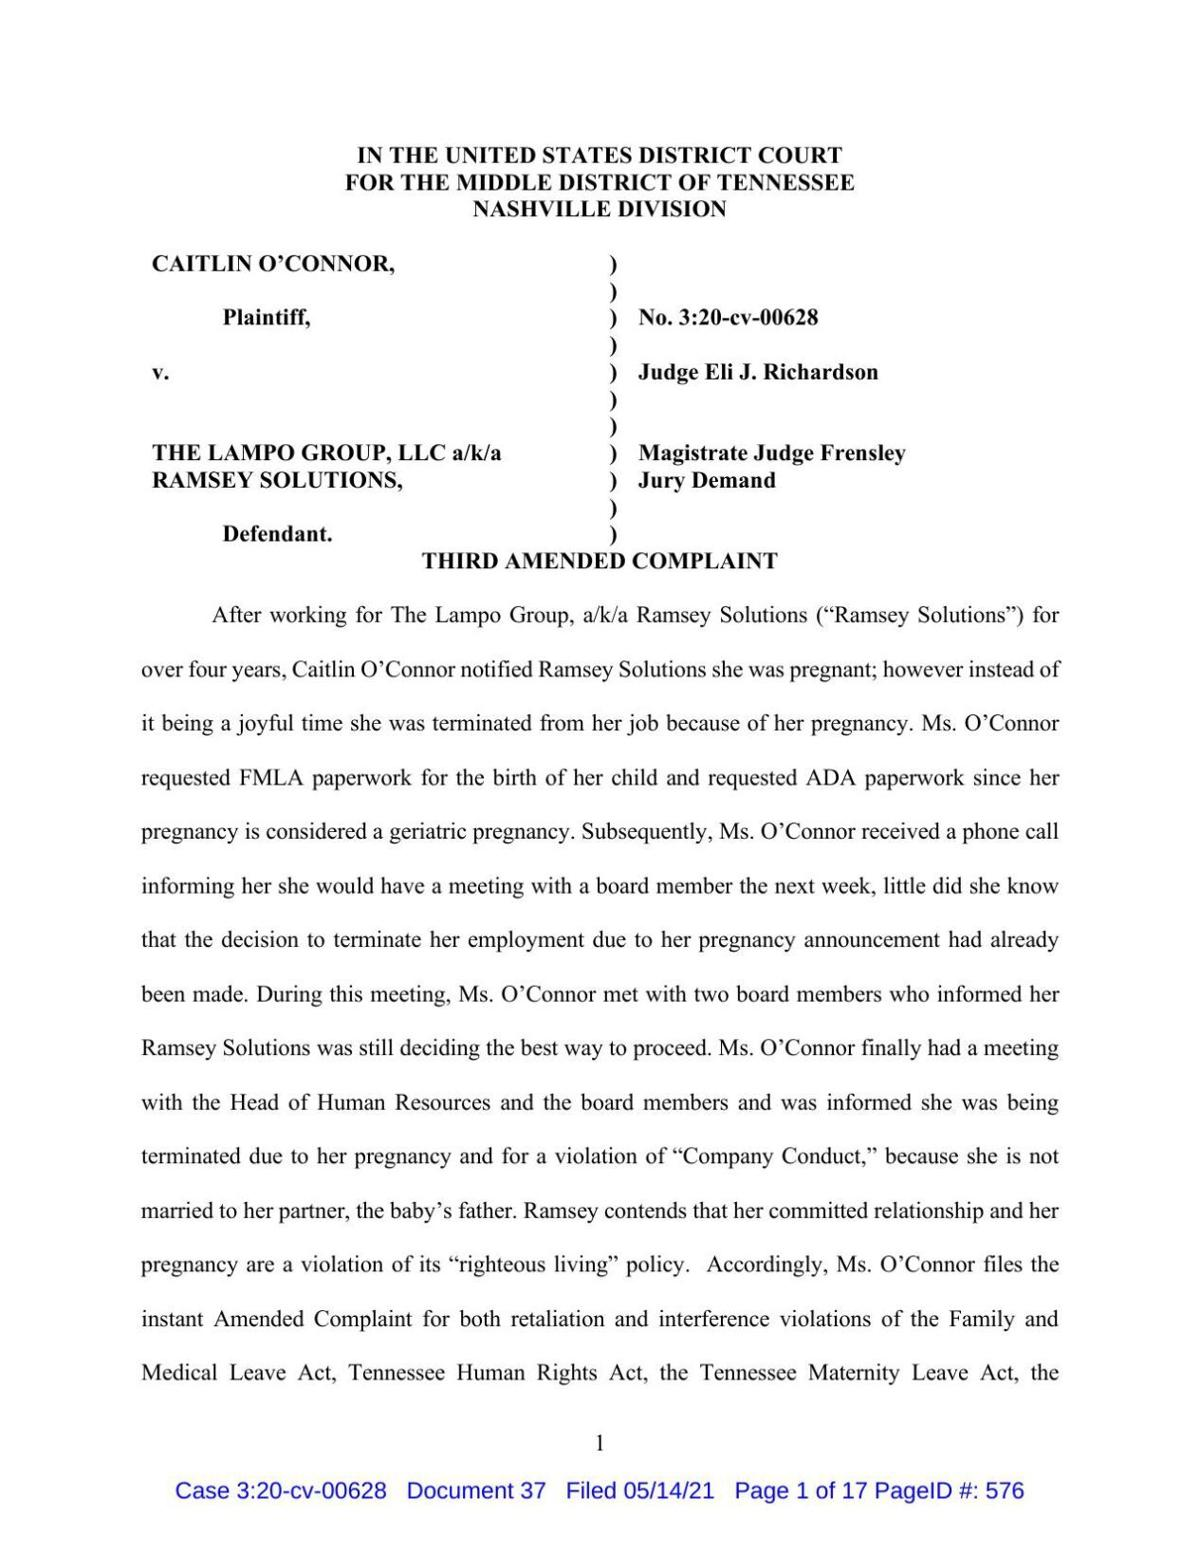 One lawsuit filed against Ramsey Solutions